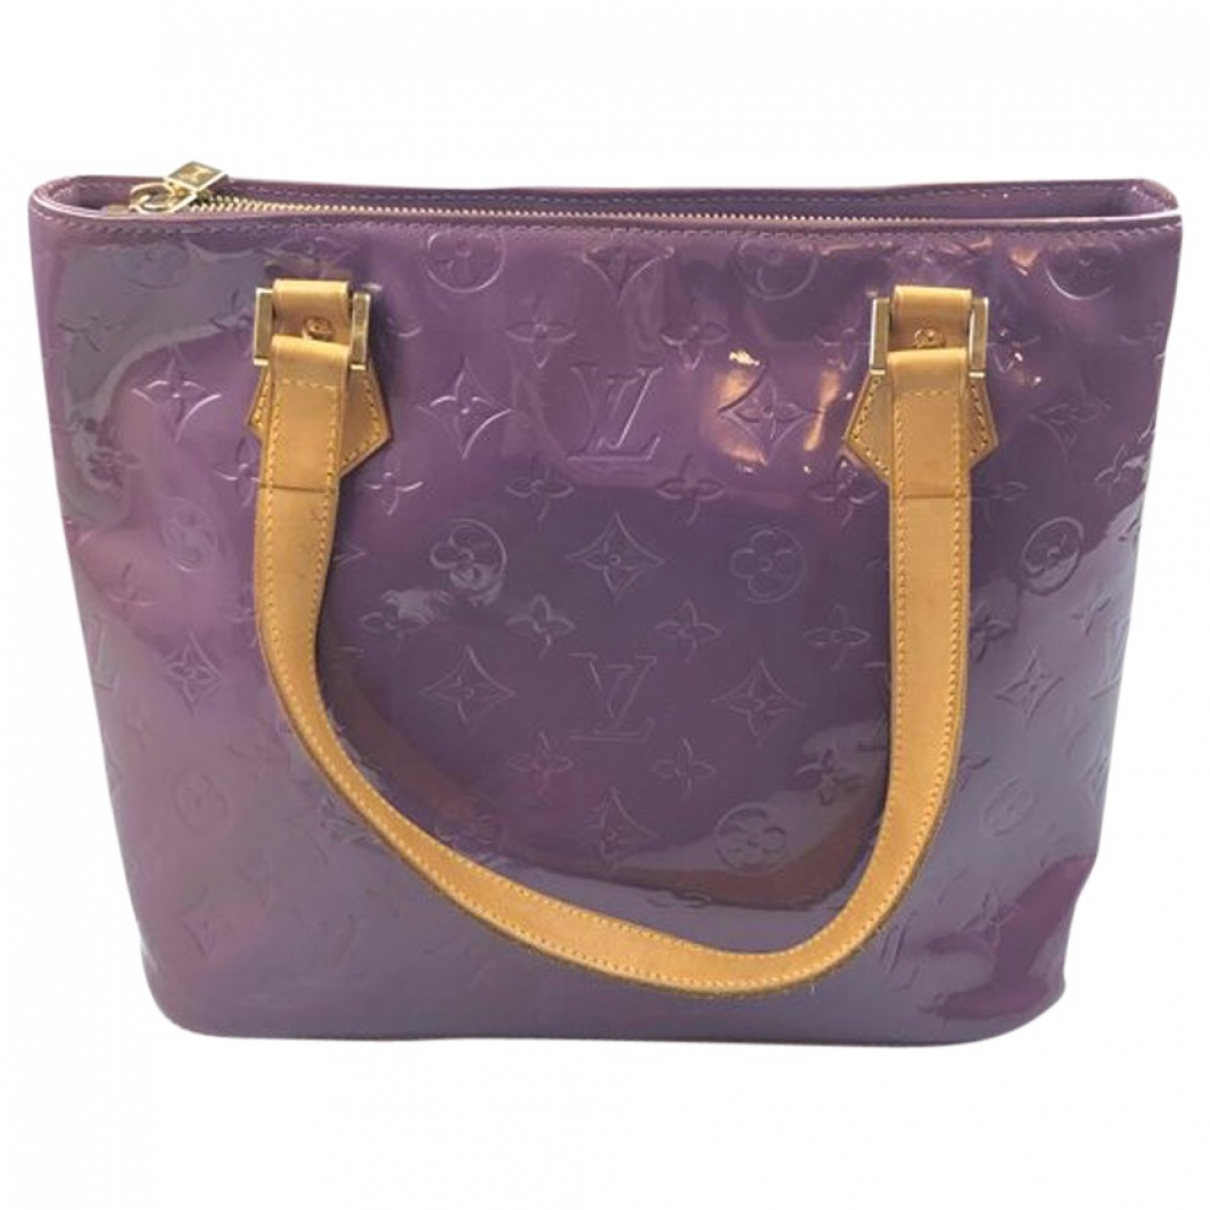 Louis Vuitton Houston Purple Patent leather handbag for Women \N